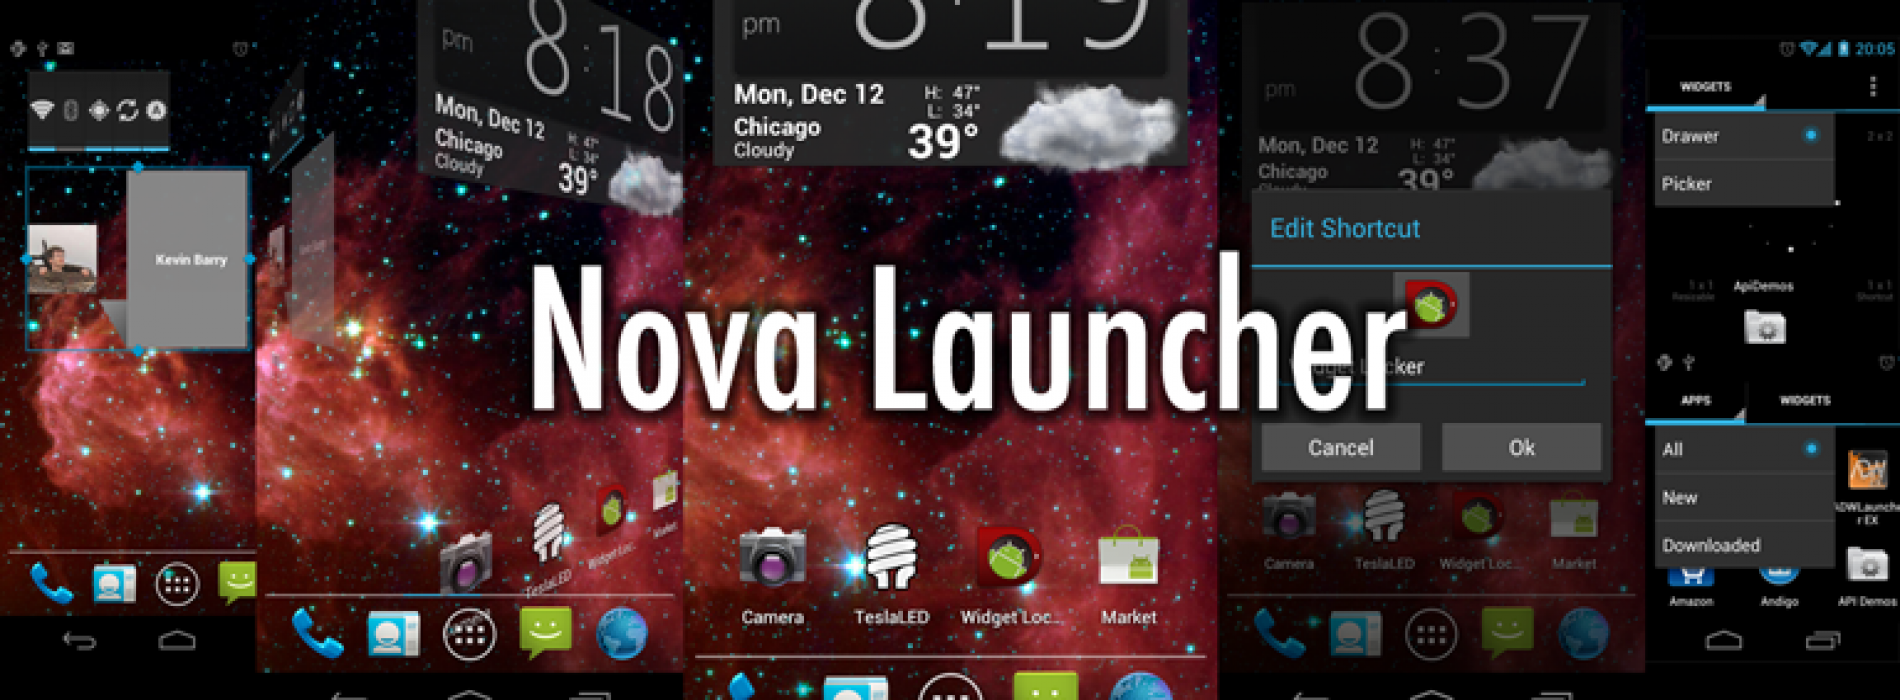 Nova Launcher gets updated with new drawer animations in version 3.1 (out of beta)